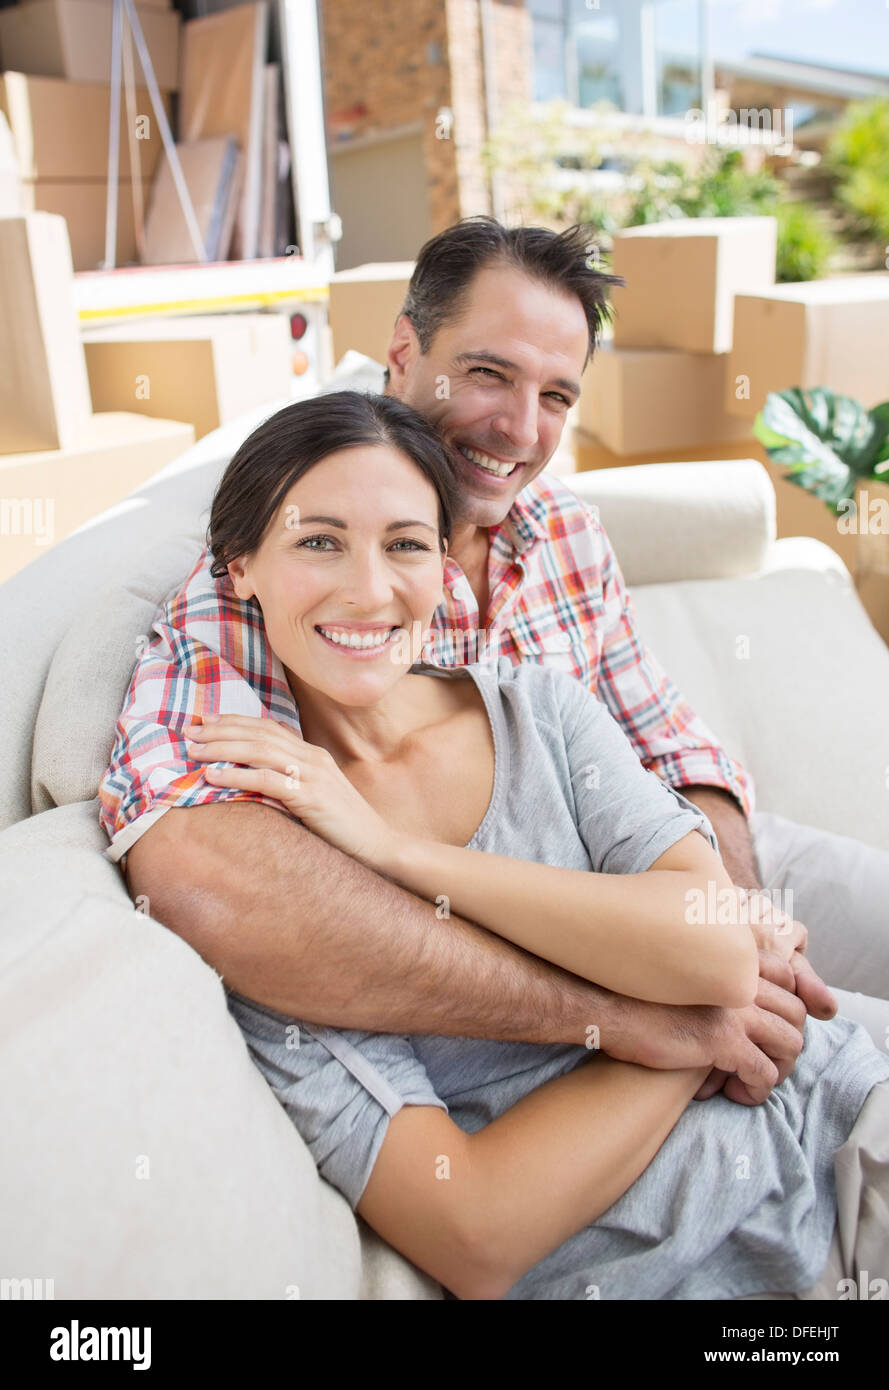 Portrait of smiling couple hugging on sofa in driveway near moving van - Stock Image